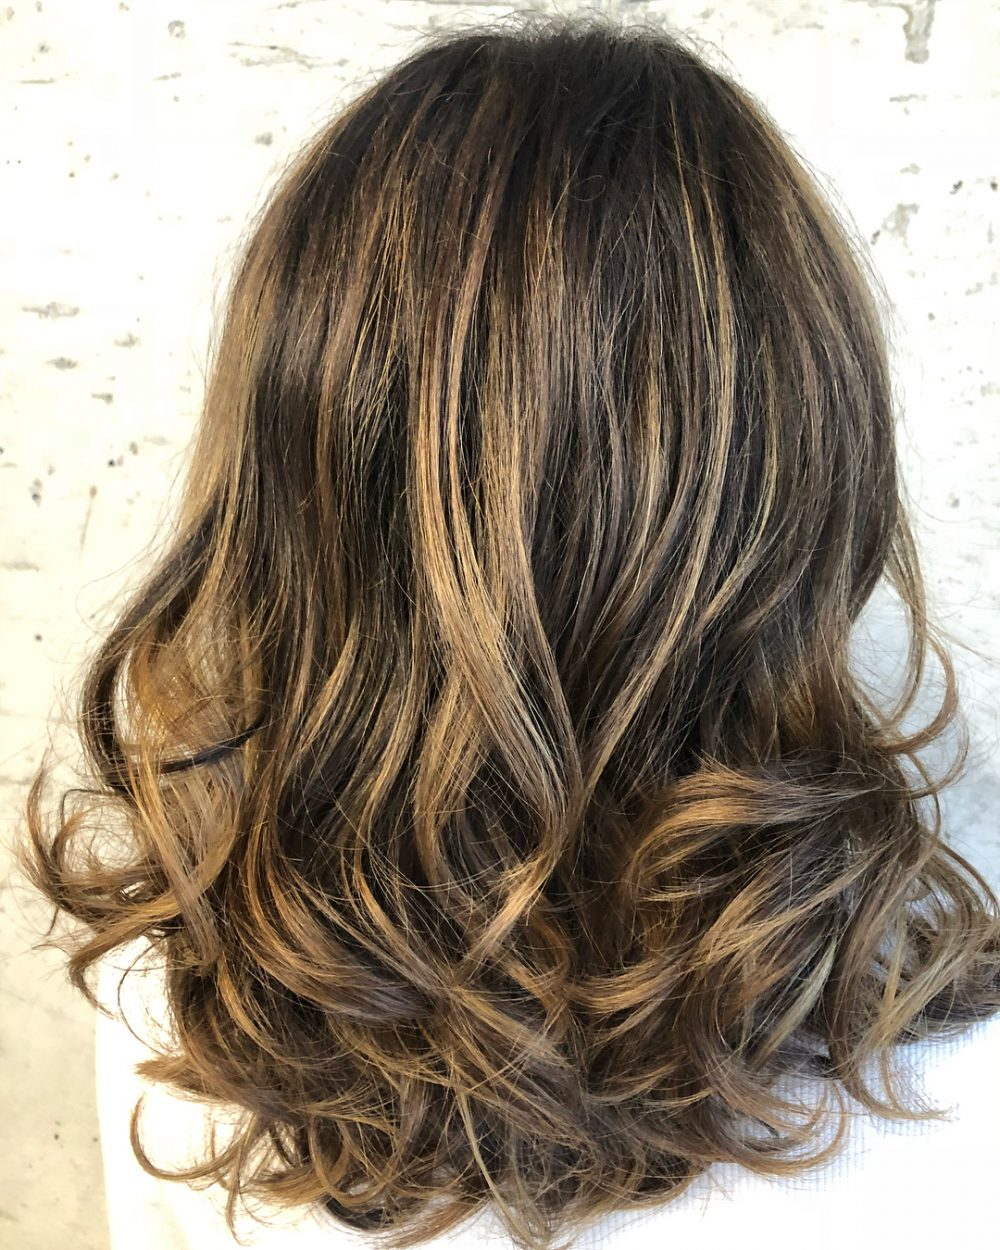 Natural Complexion with Highlights hairstyle